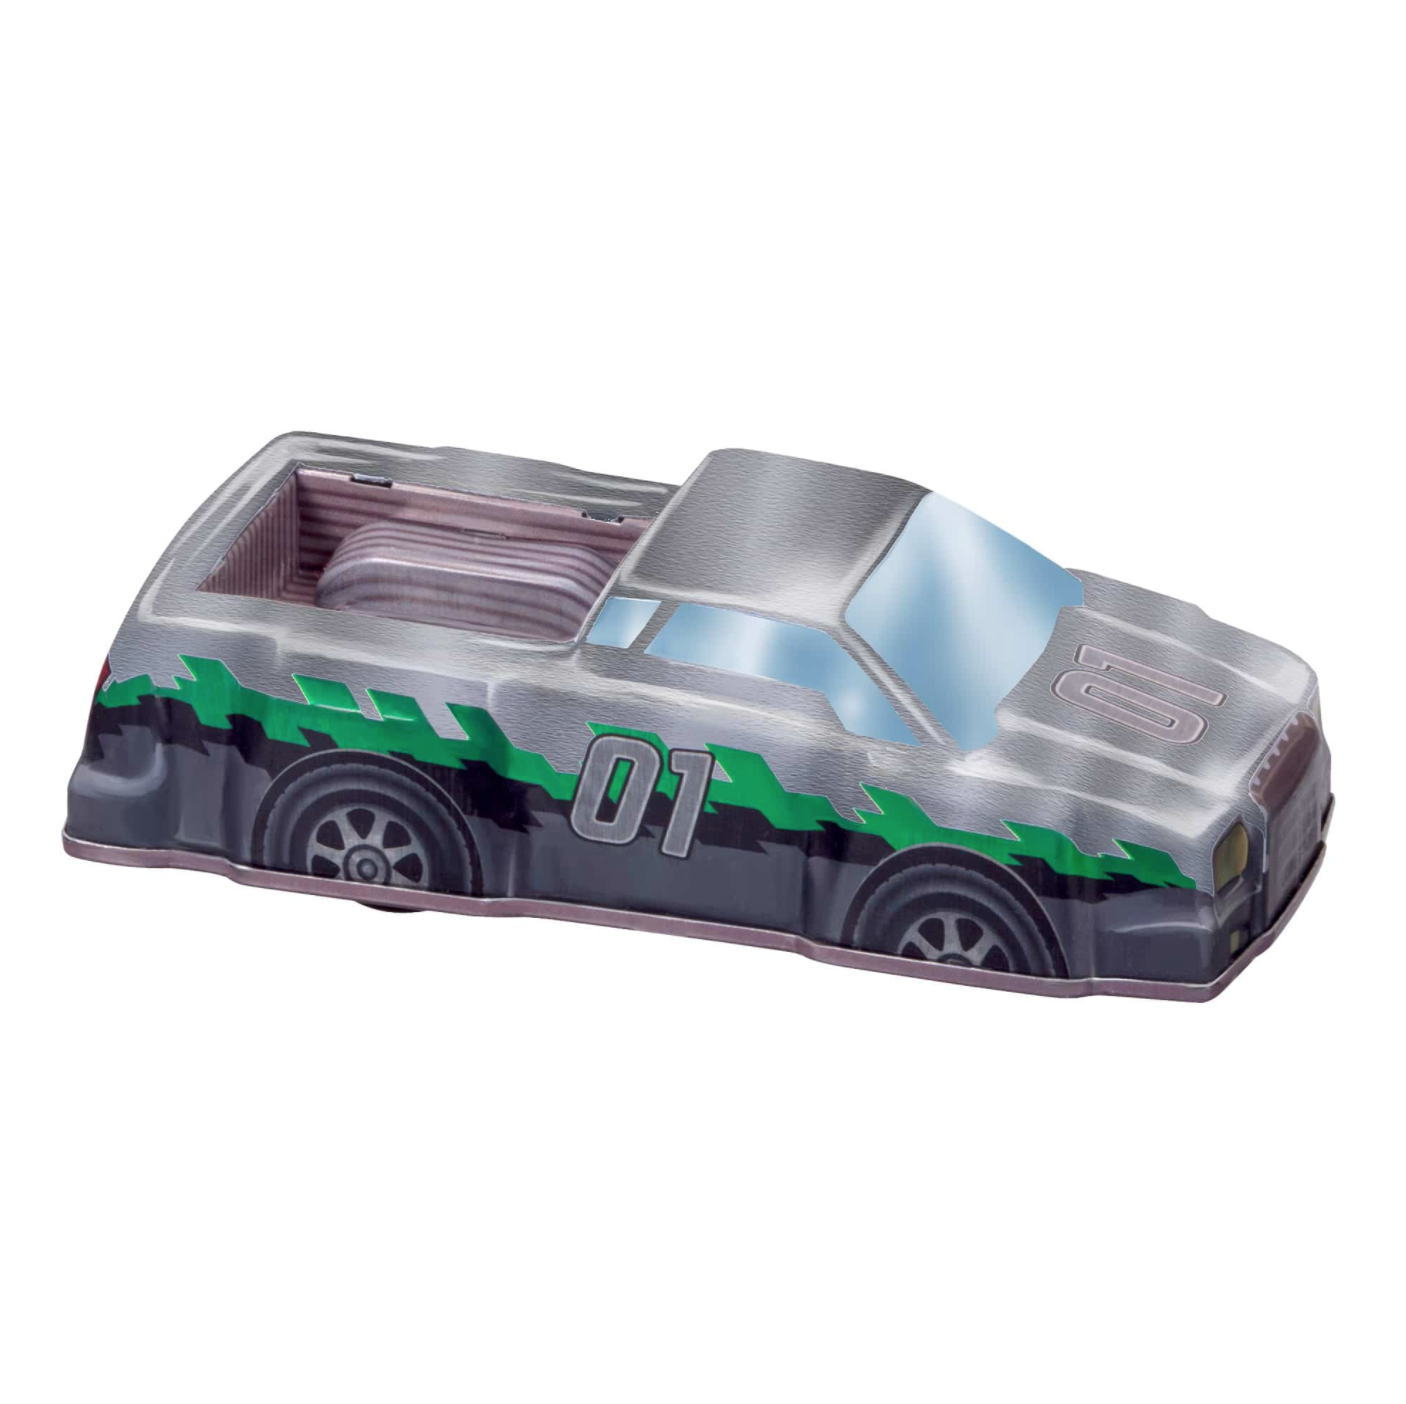 Rev-Up Racers Tin Trucks Green & Silver 1